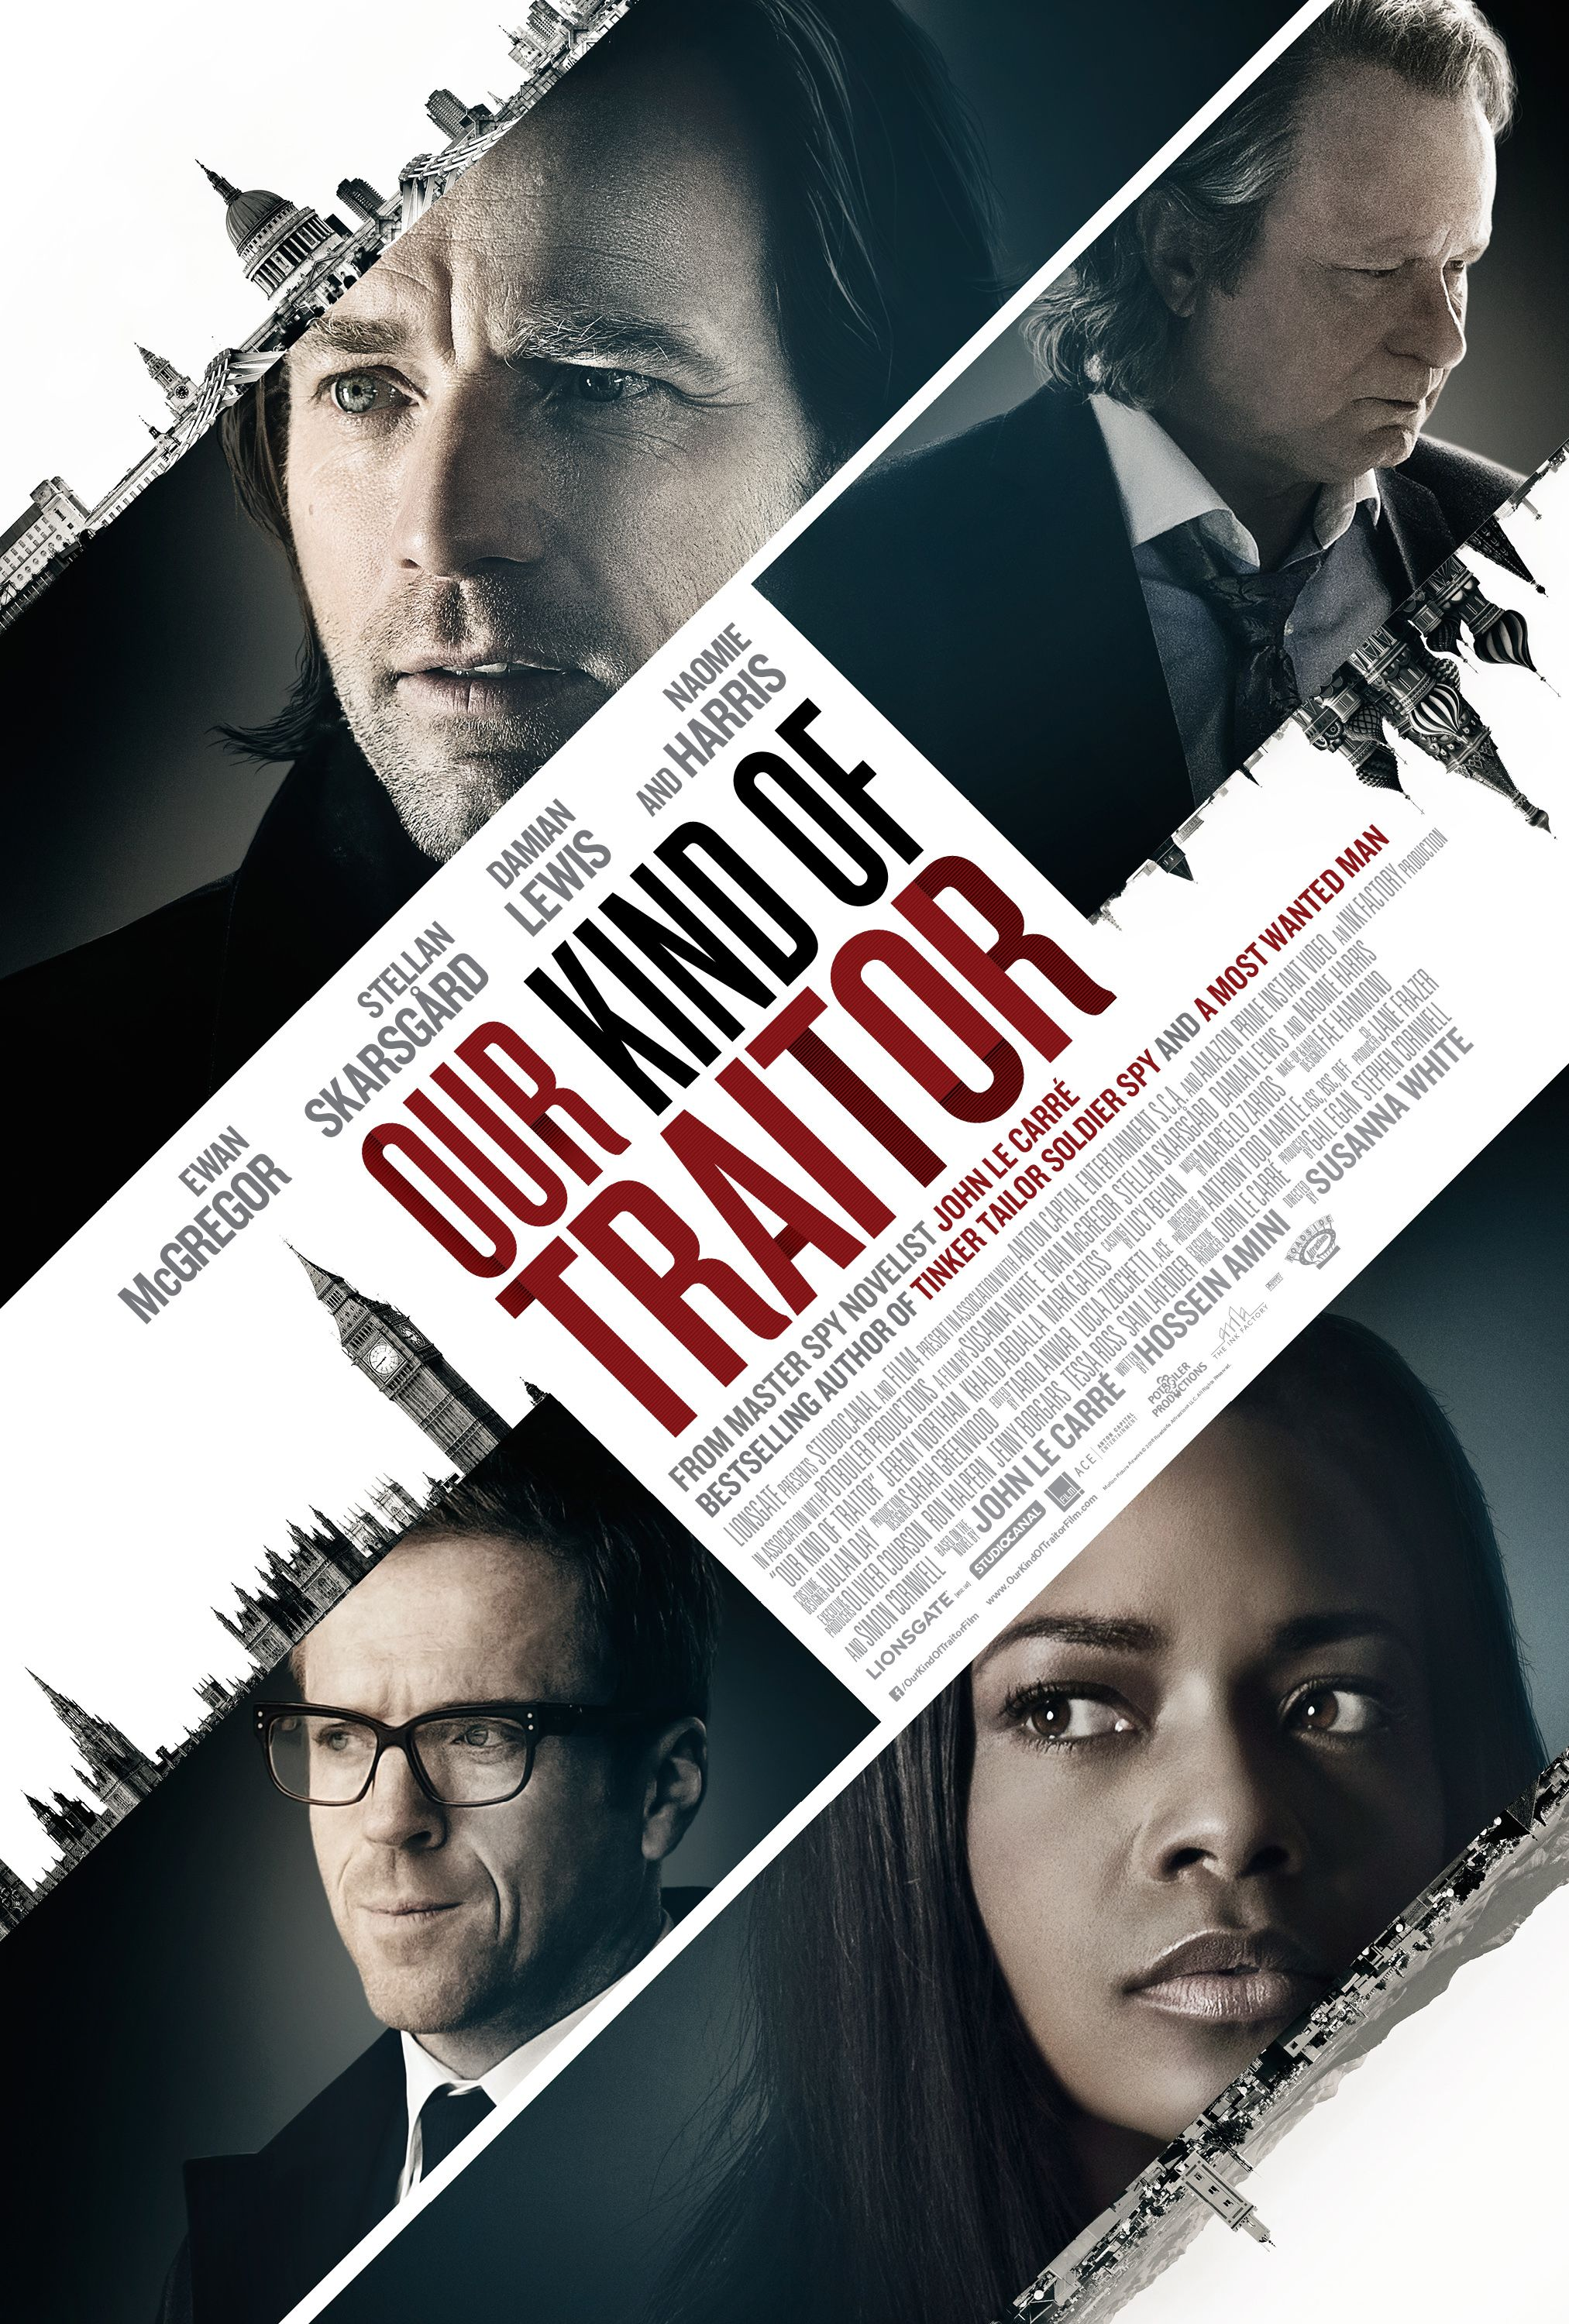 Our Kind of Traitor (15) - Village Cinema | A thriller adapted from the 2010 novel by John Le Carre, moving from the era of Cold War spying to the equally dark world of money laundering.  - Dalegate Market | Shopping & Café, Burnham Deepdale, North Norfolk Coast, England, UK